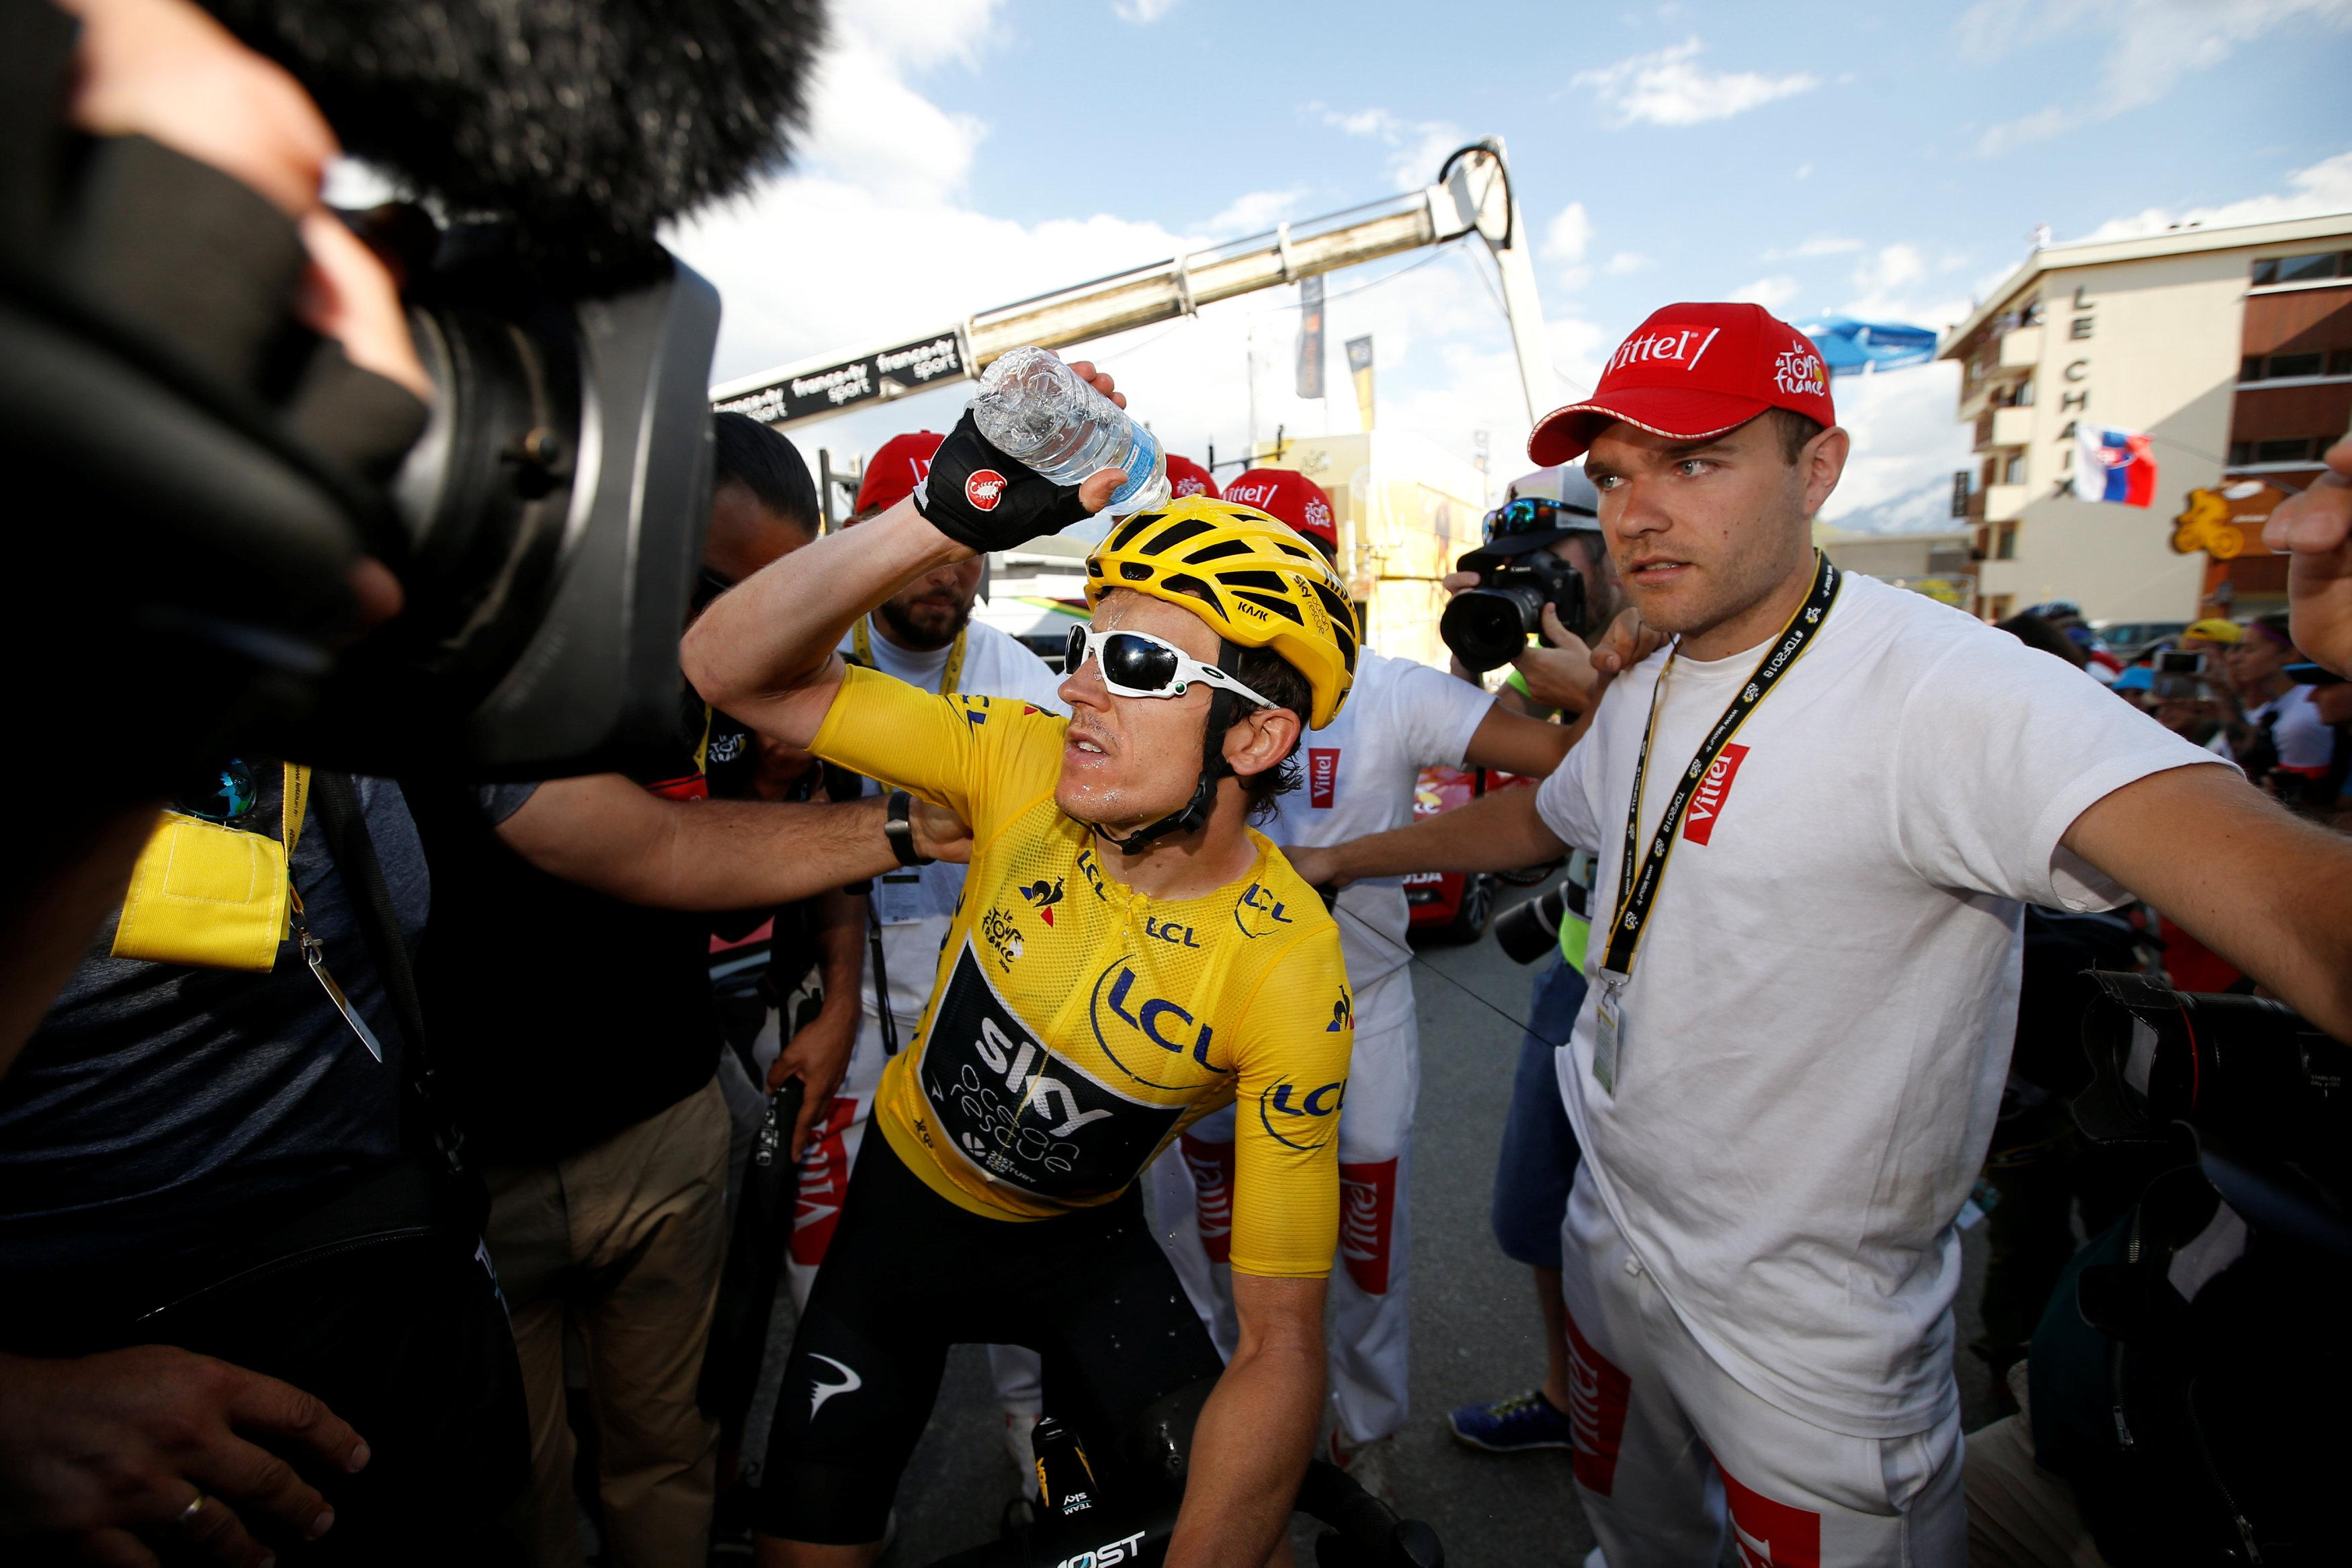 Geraint Thomas clung onto the Yellow Jersey after today's stage win